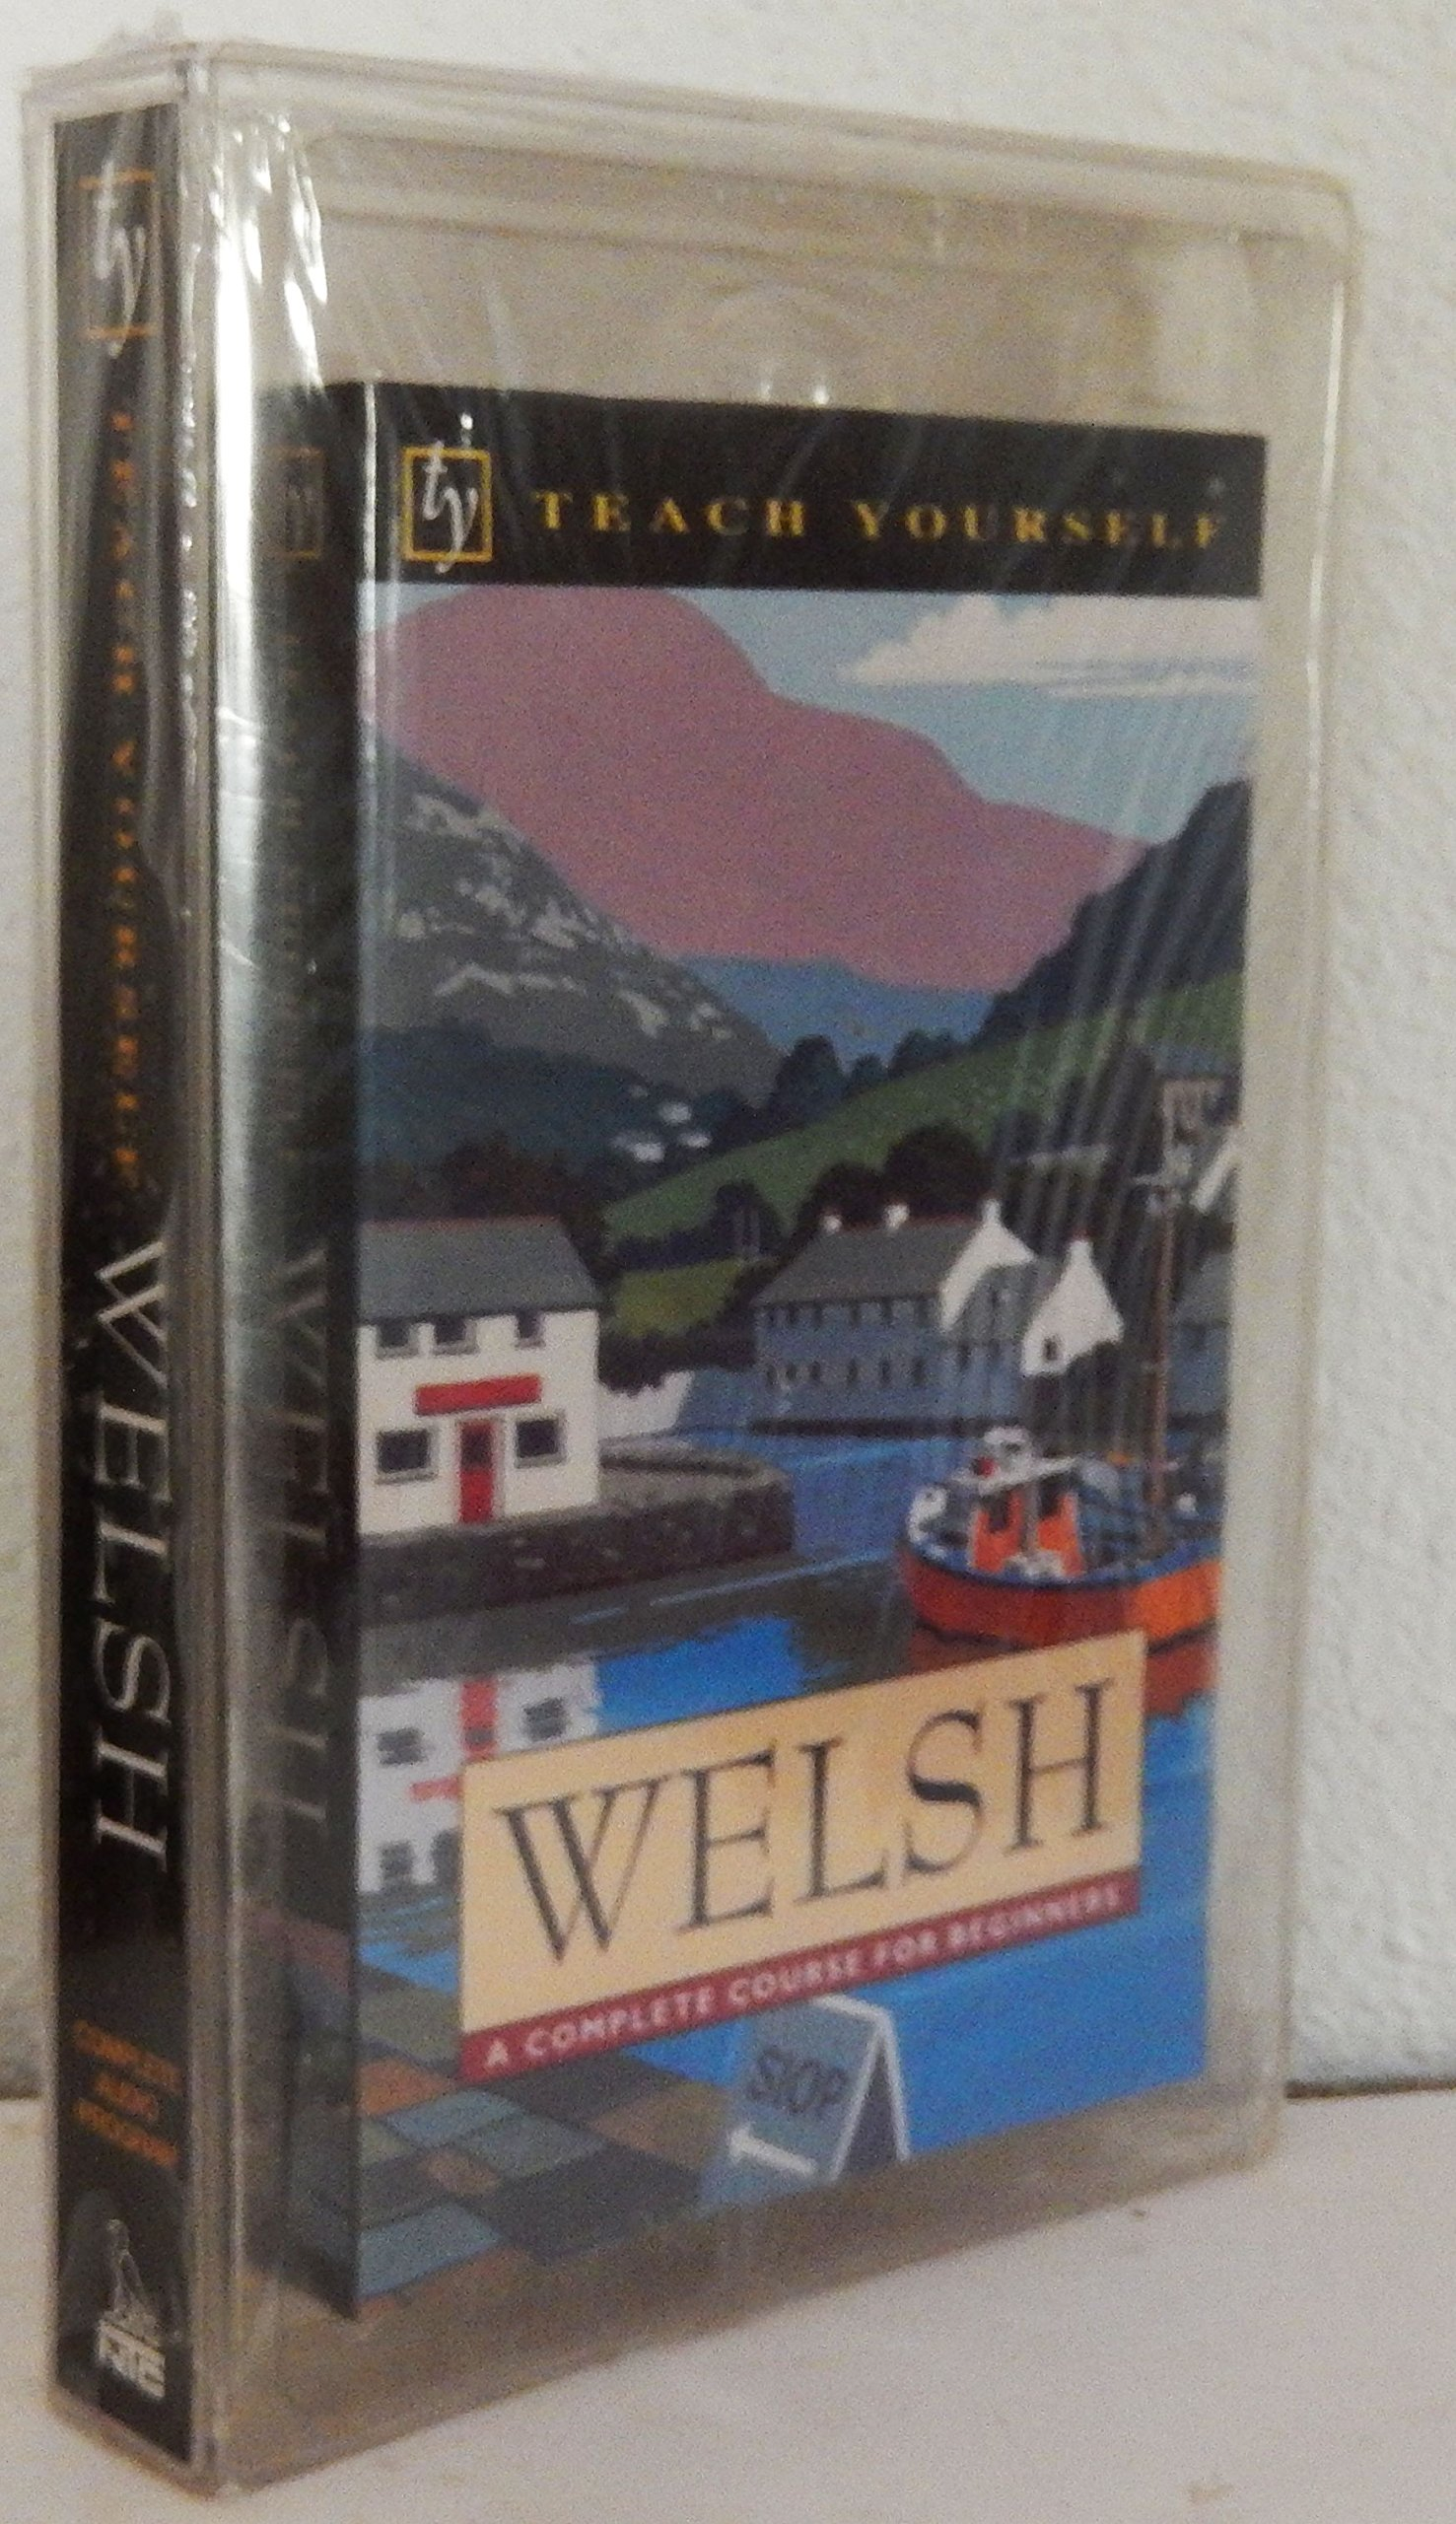 Welsh: A Complete Course for Beginners (Teach Yourself)